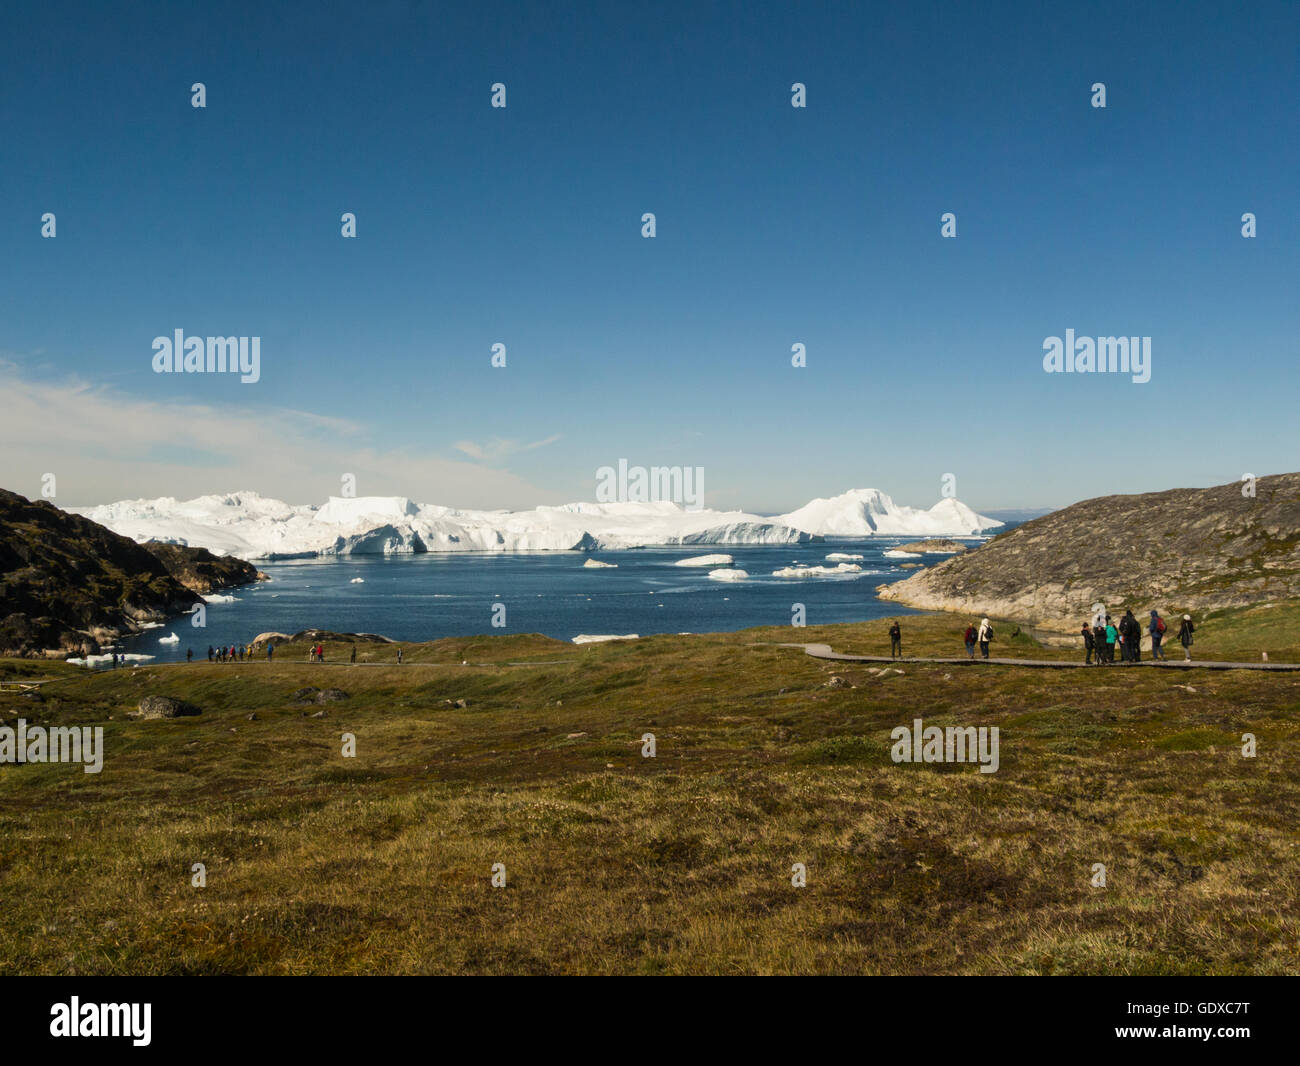 Ilulissat icefjord fed by Sermeq Kujalleq glacier Ilulissat is a town in Qaasuitsup municipality in western Greenland - Stock Image